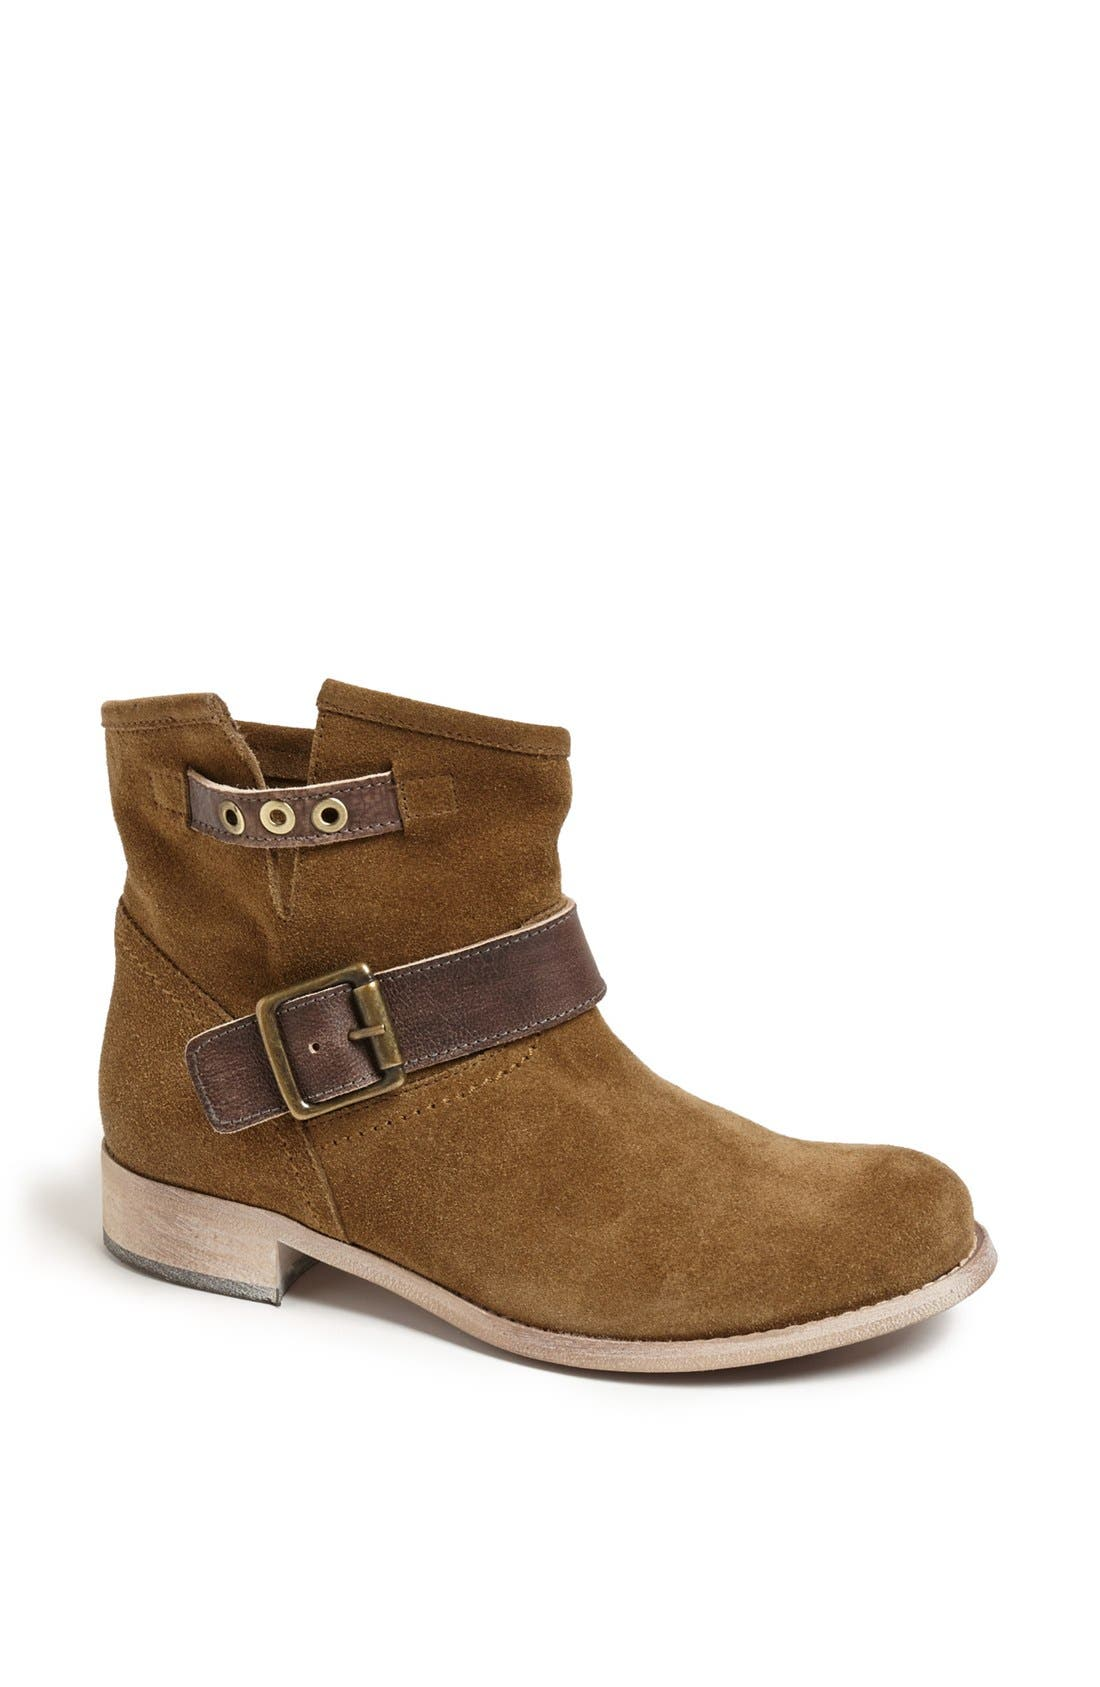 Main Image - Cordani 'Pascal' Belted Bootie